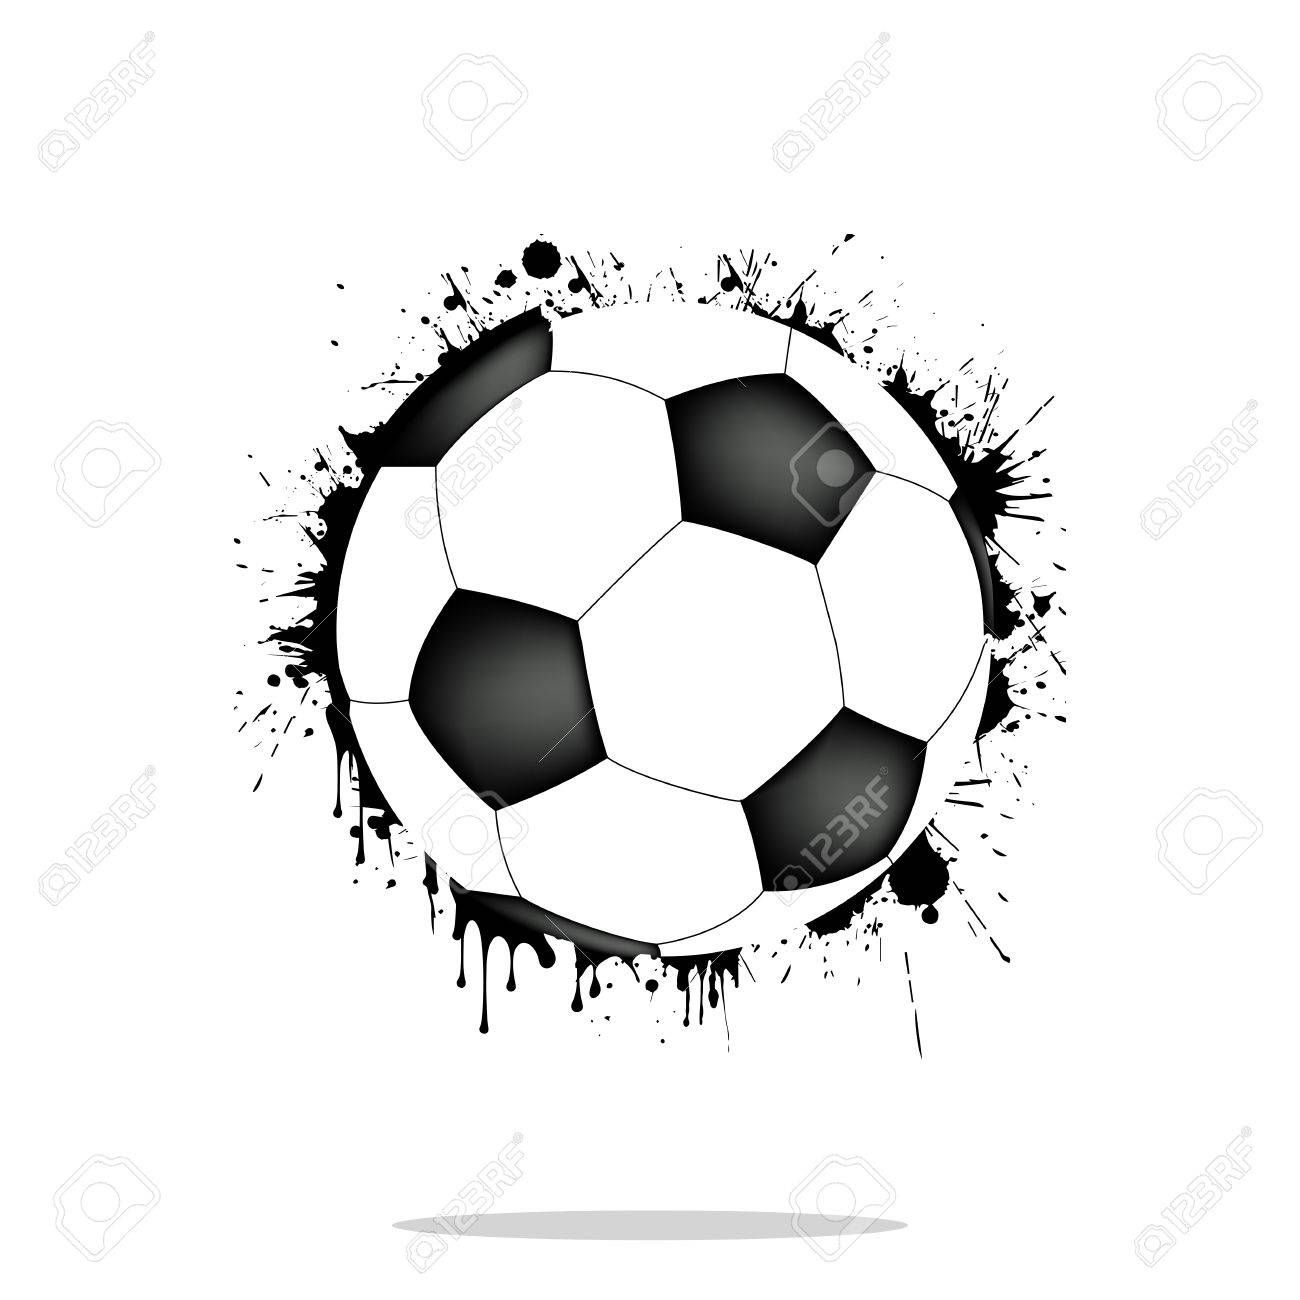 Background Abstract Soccer Ball From Blots Grunge Style Vector Illustration Ad Soccer Ball Background Abstract Blots Soccer Ball Ball Soccer